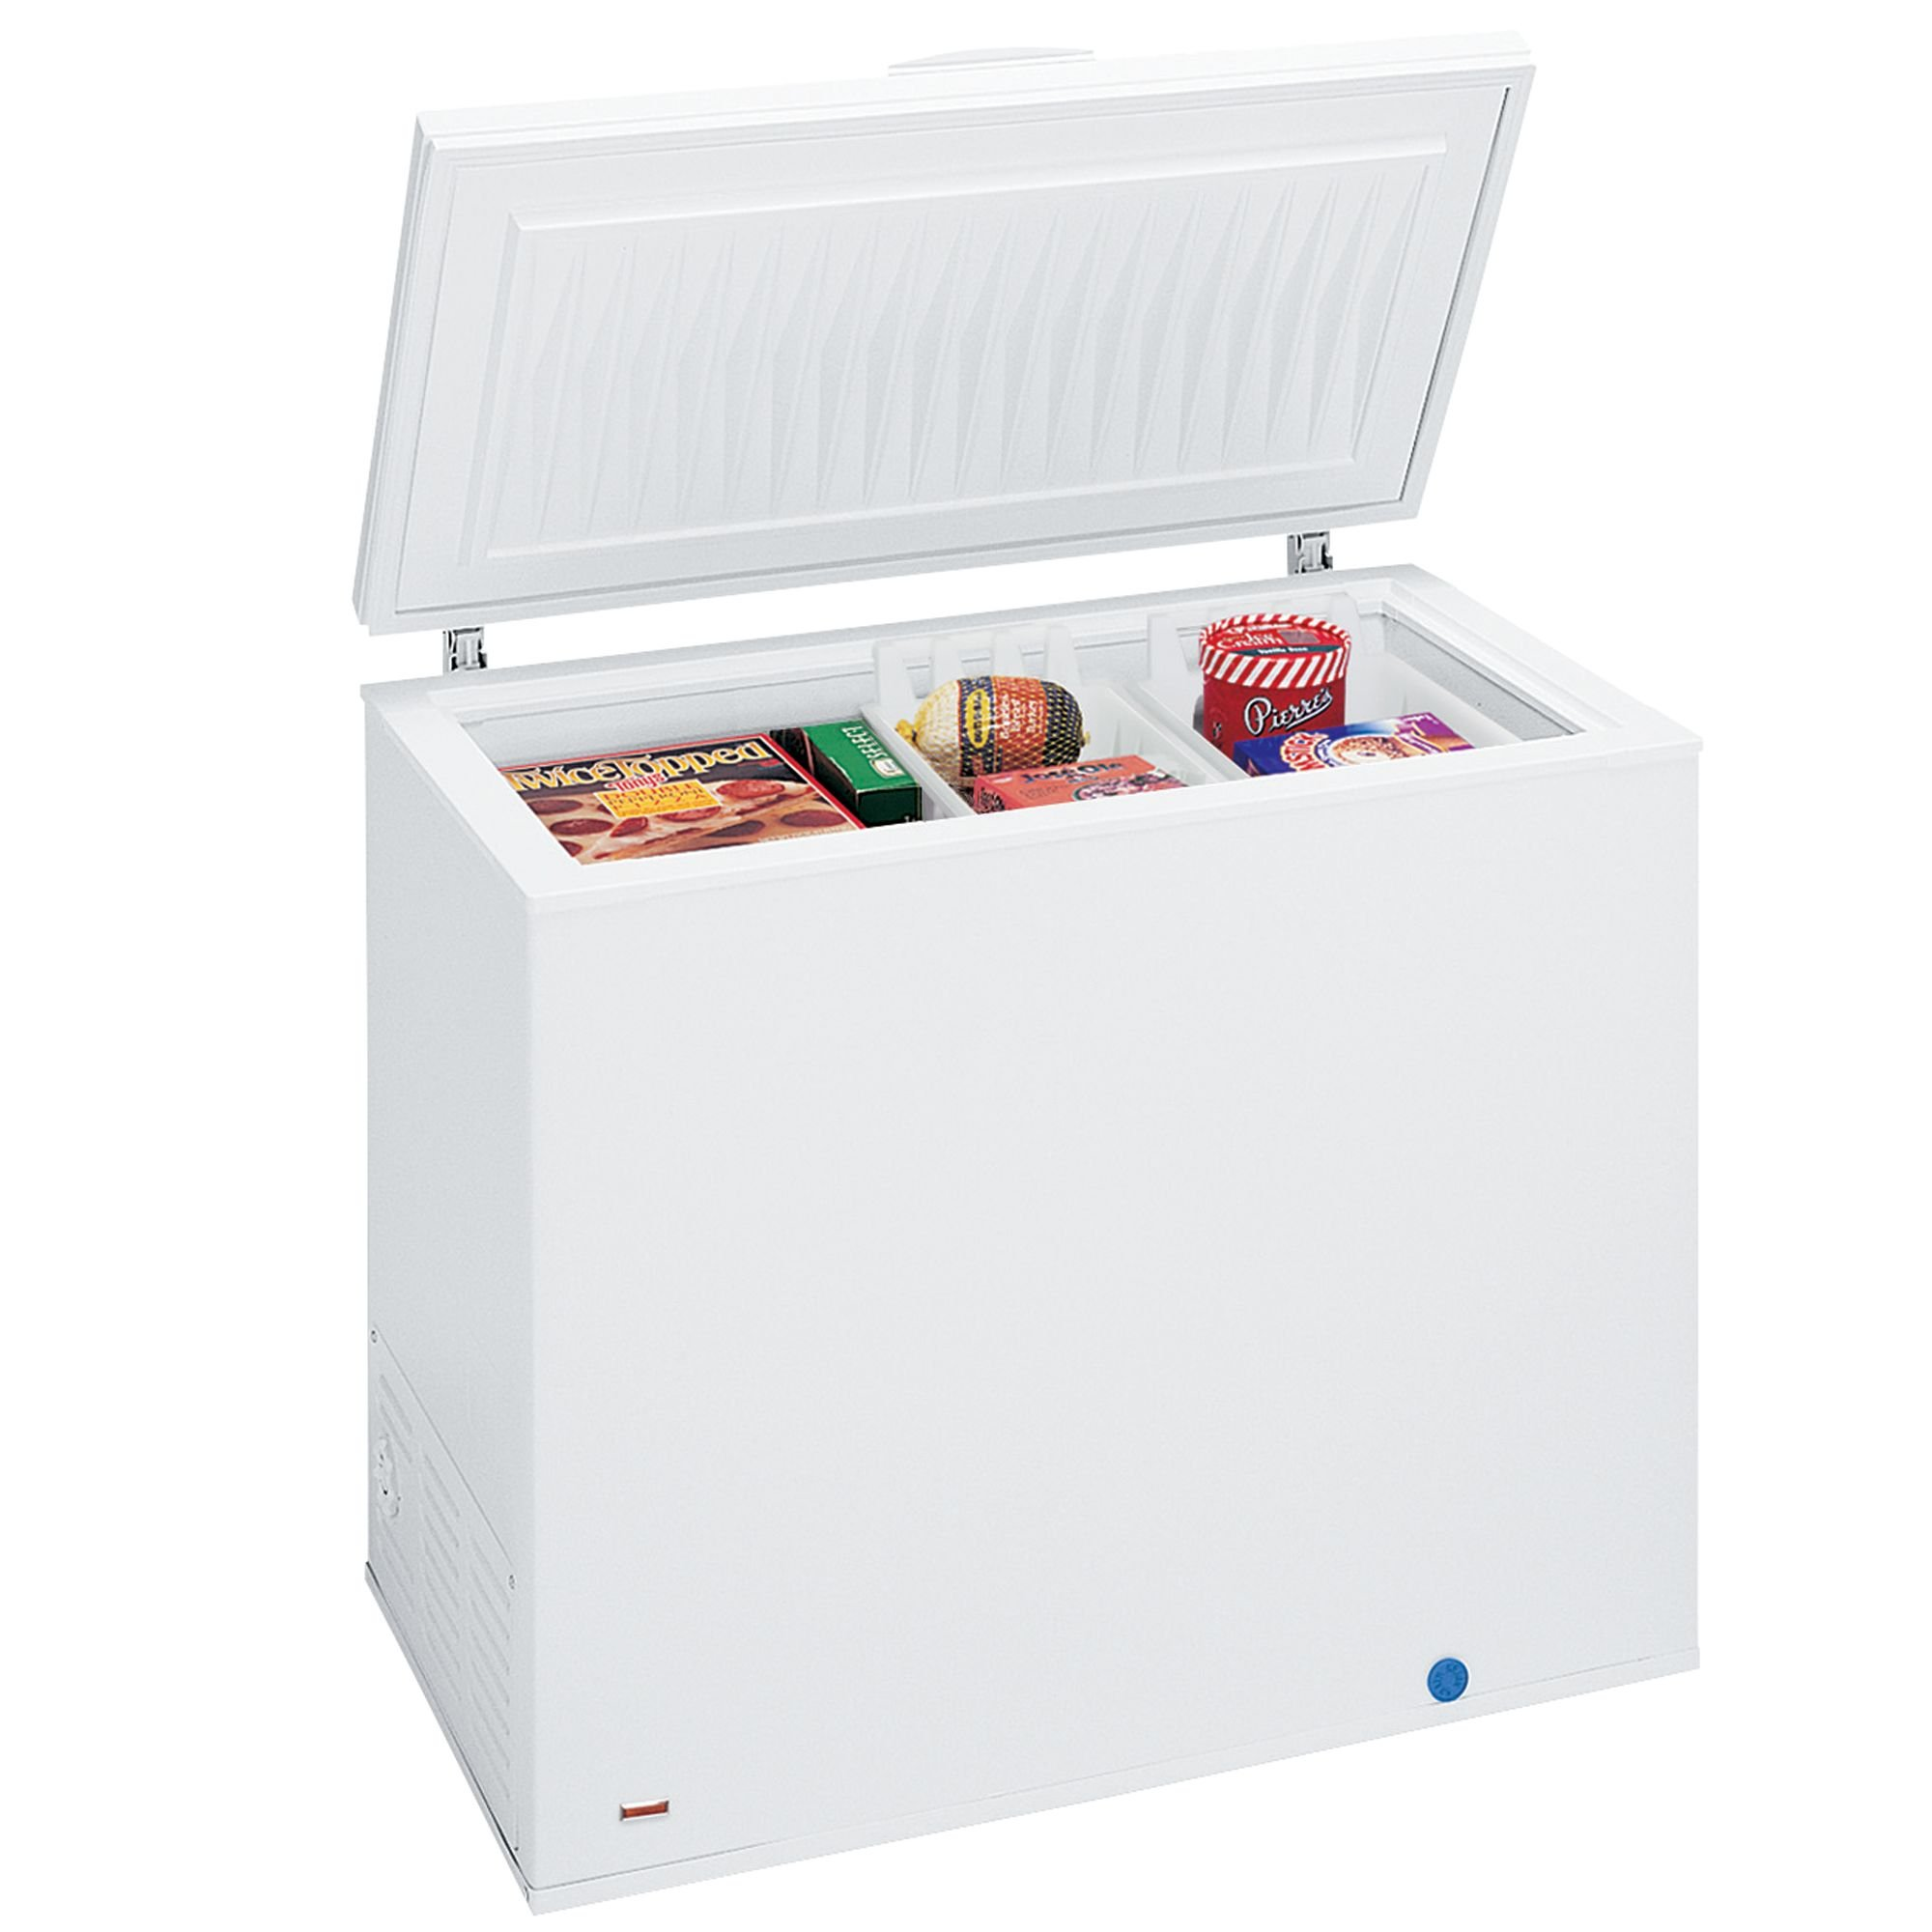 Kenmore-ches-freezer